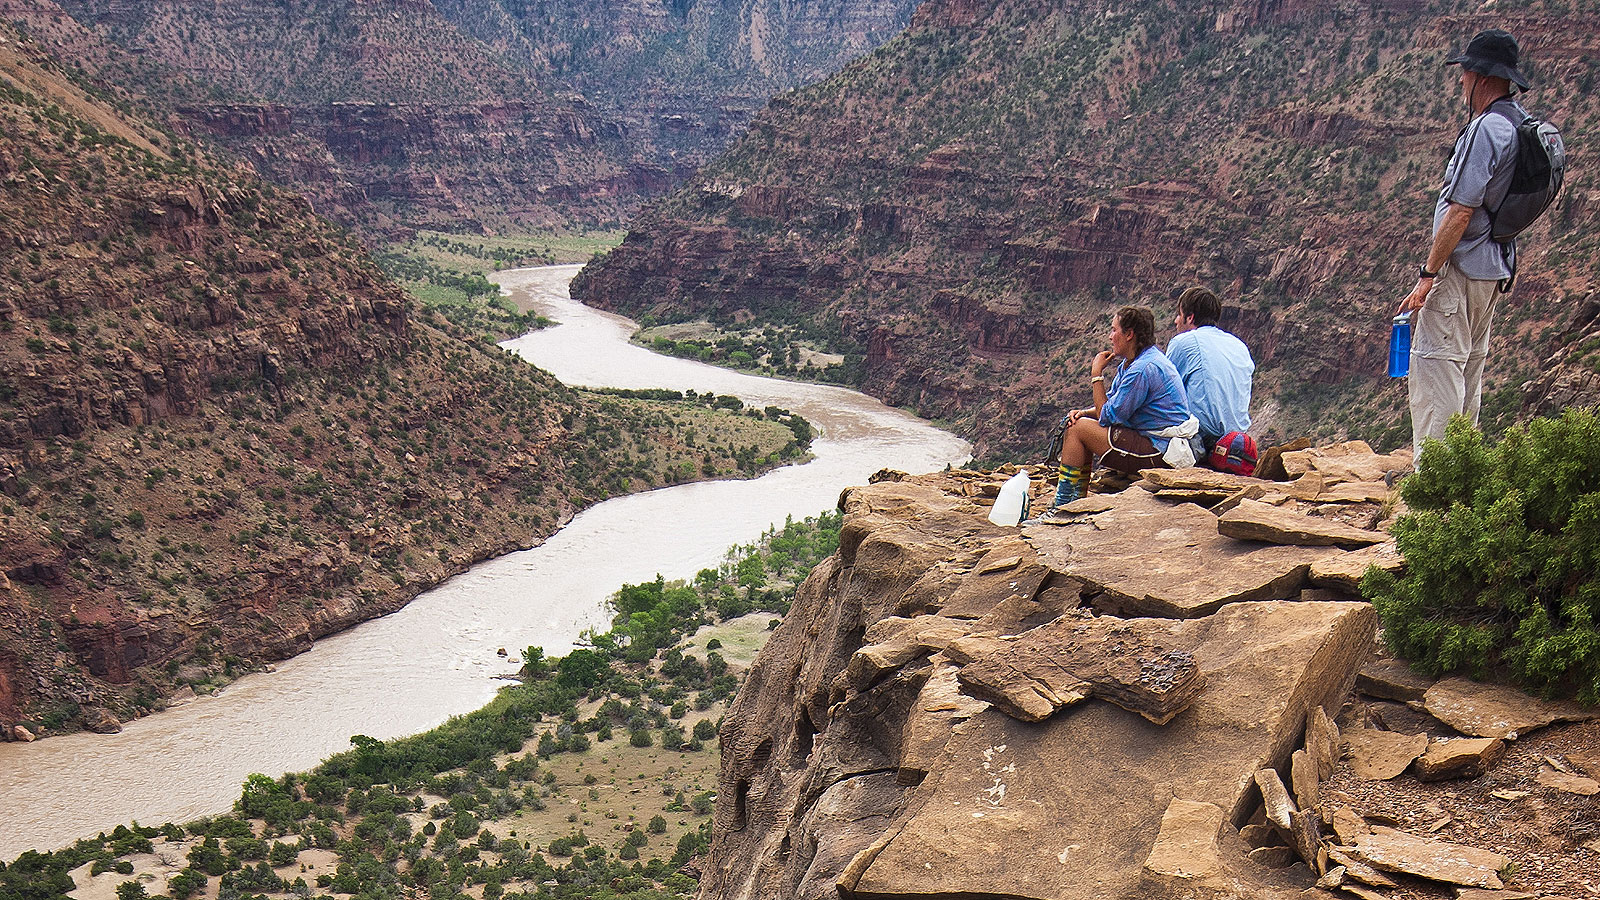 Overlooking the river on the Green River in Desolation Canyon